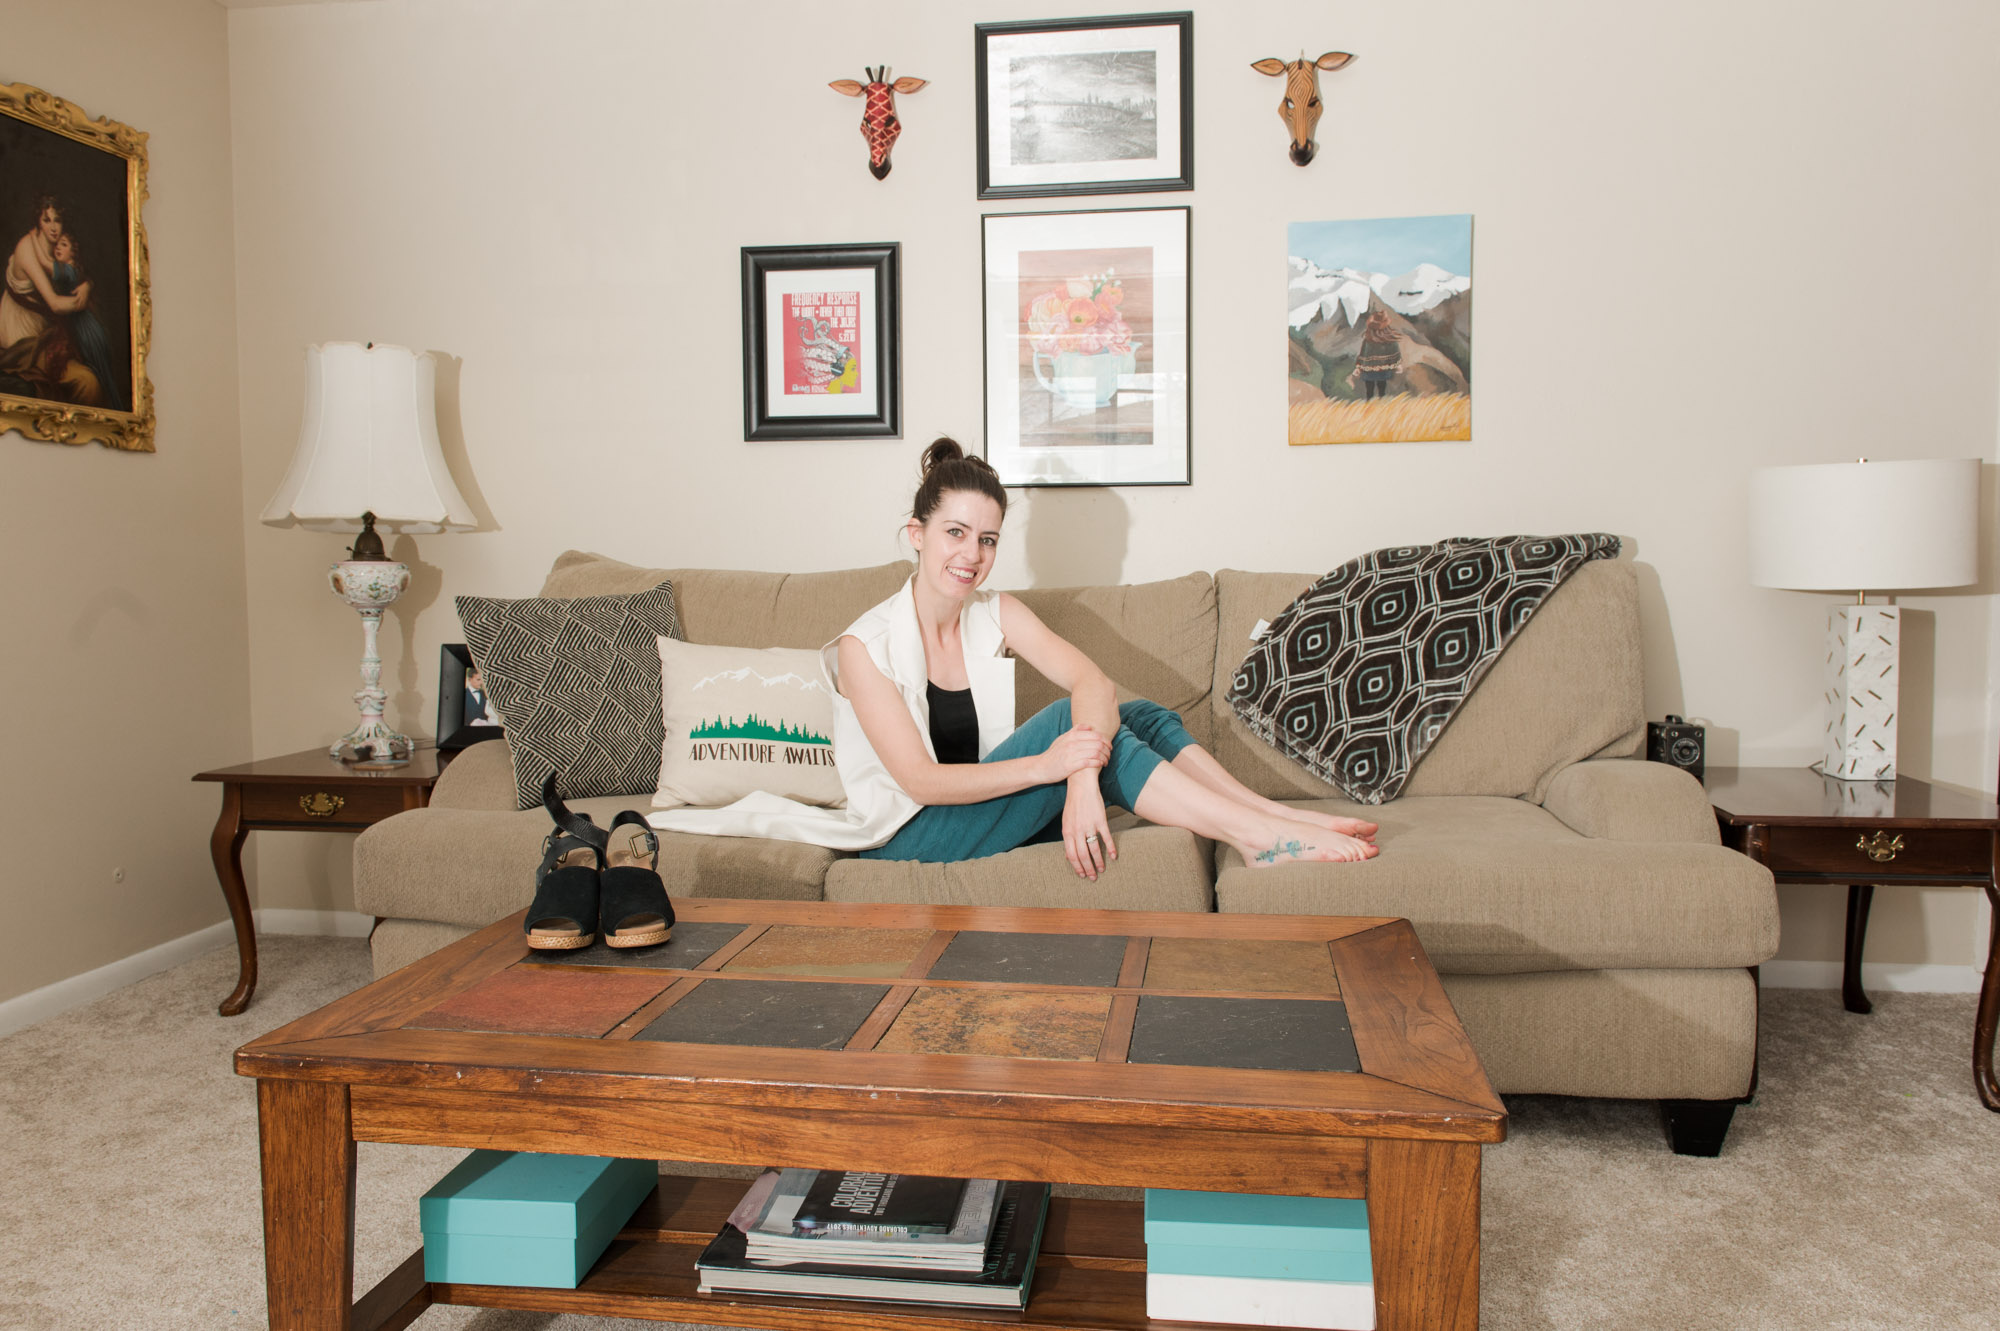 Living room loungewear with a blazer and sweatpants.